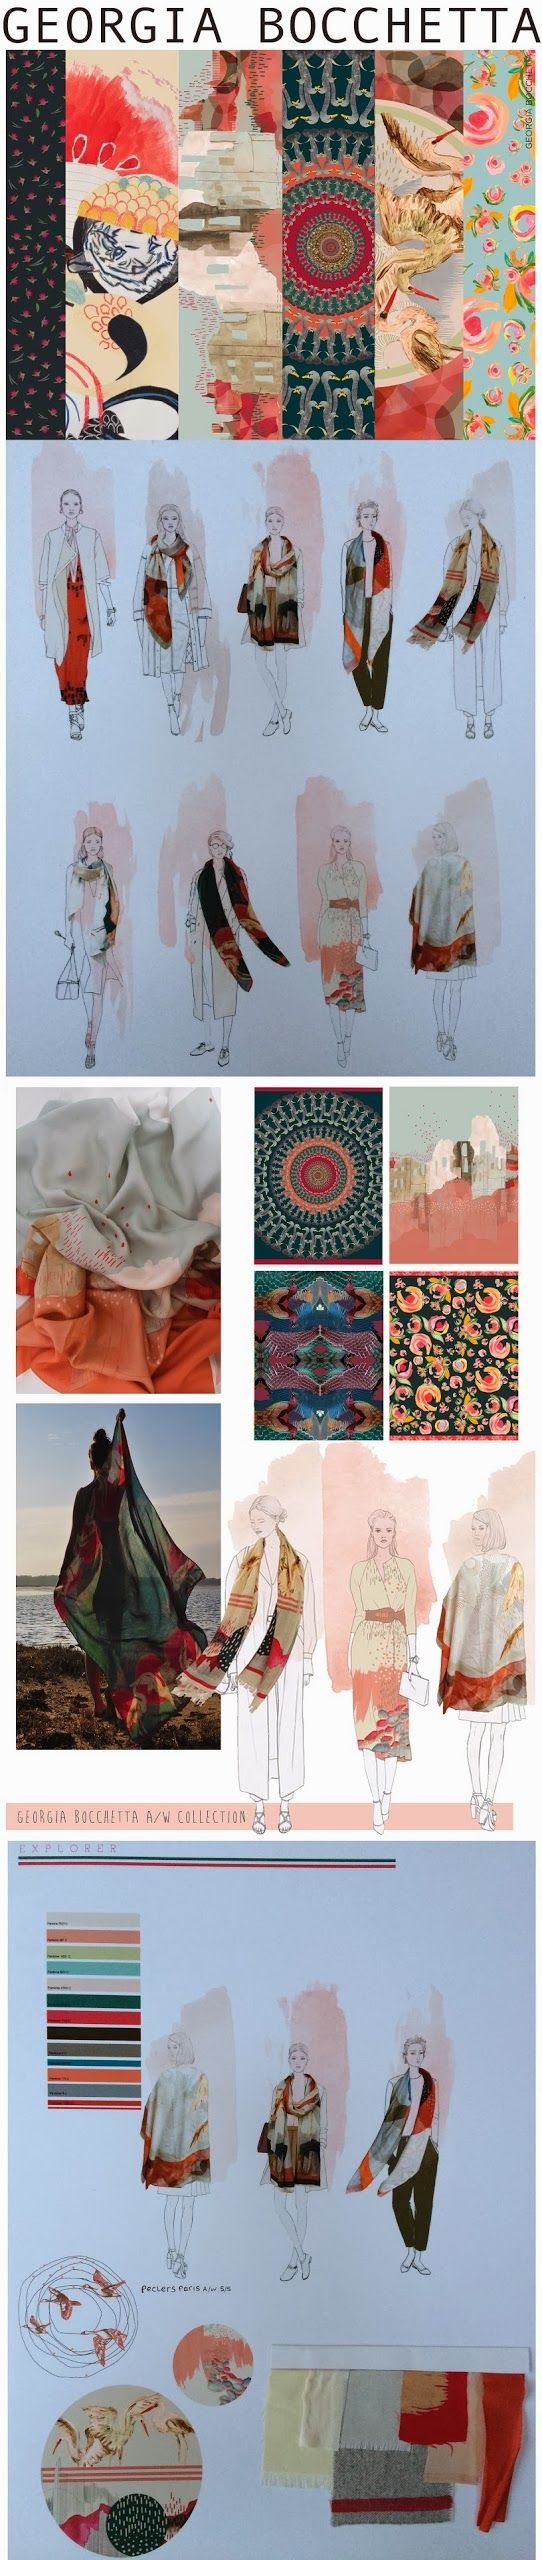 Fashion Portfolio - textiles print & pattern design development - fashion…